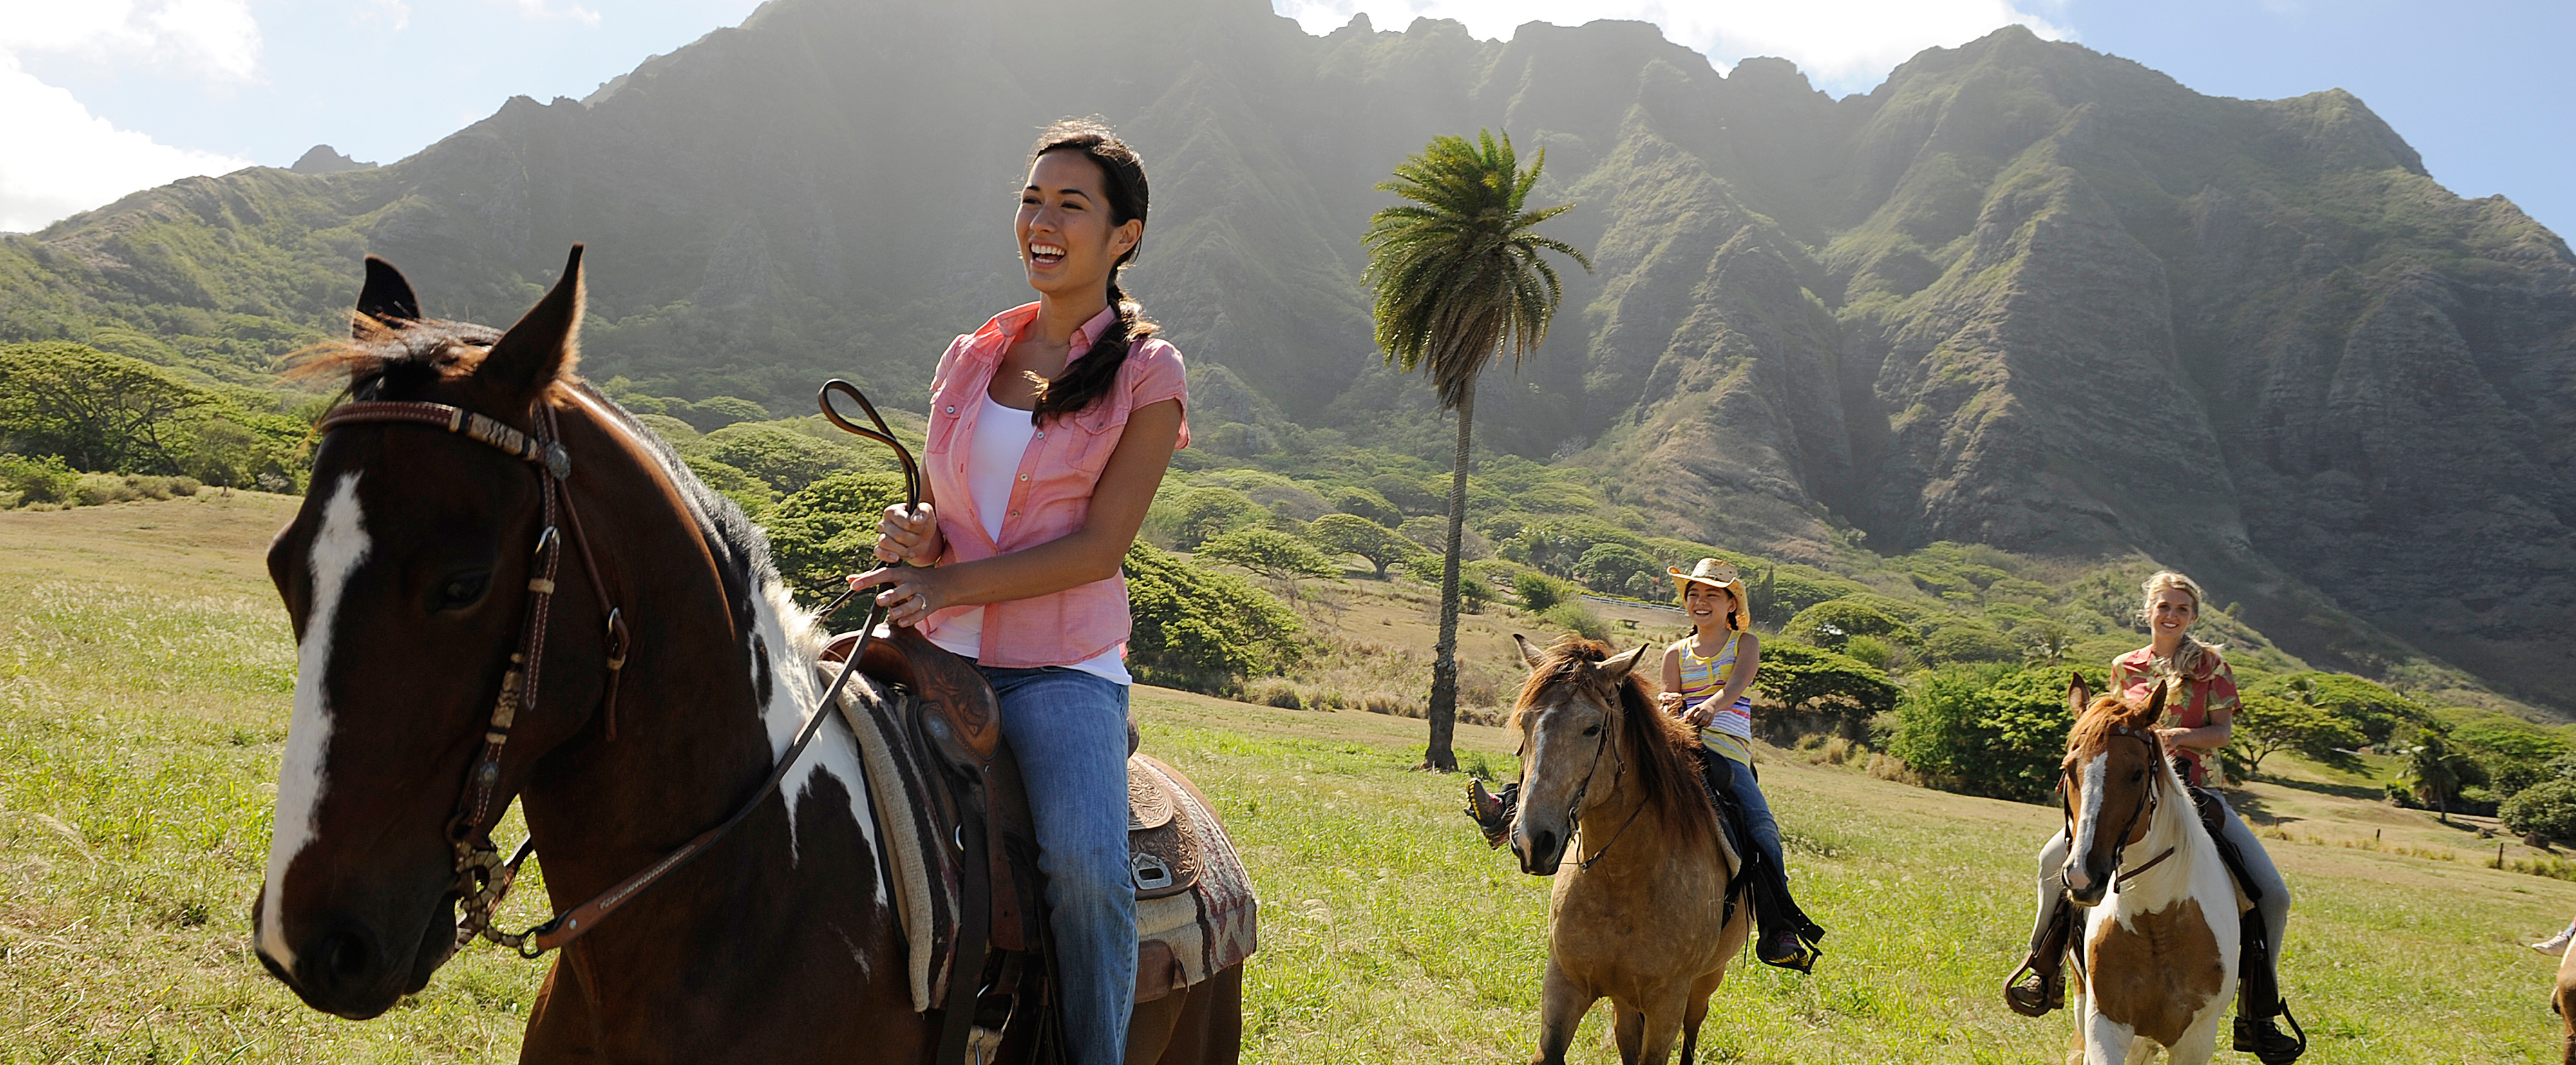 Two teen girls and a tween girl ride horses along a grassy plain with mossy mountains looming beyond